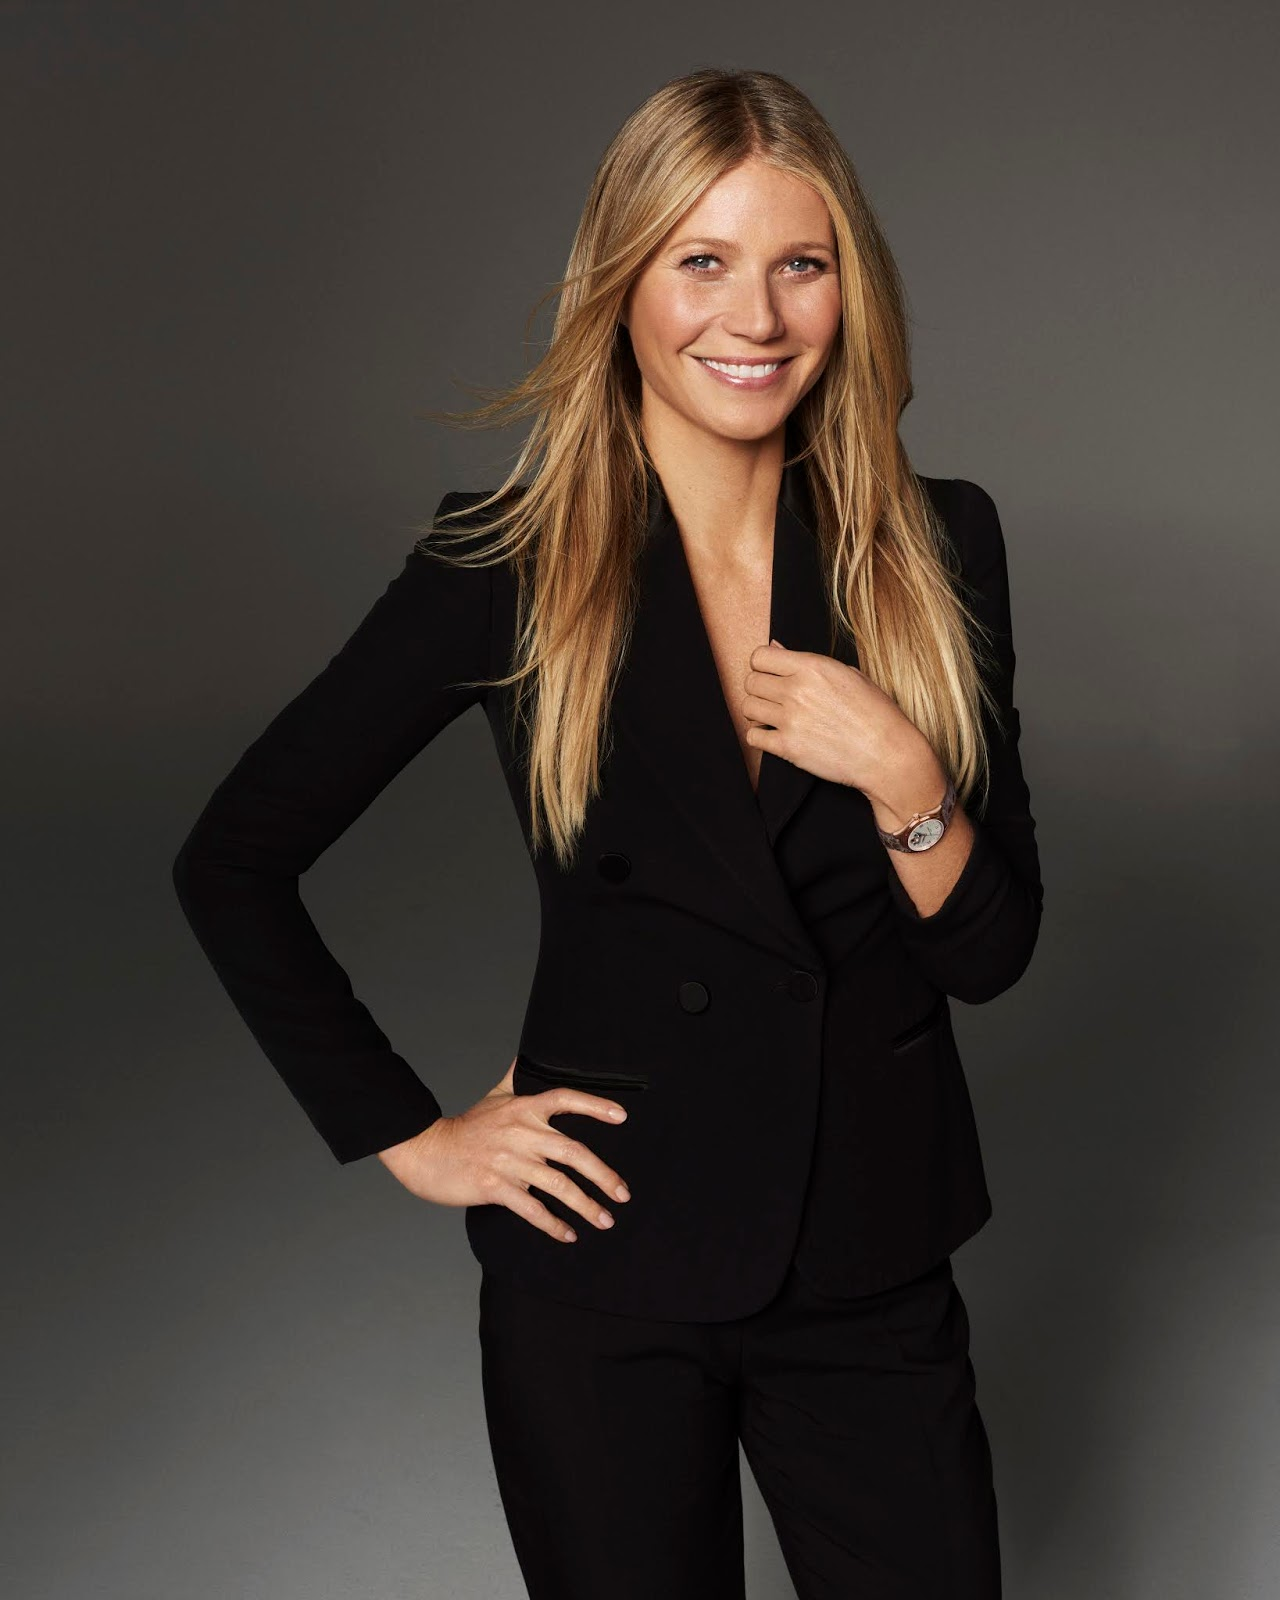 266b5ac6ac0 Actress and philanthropist Gwyneth Paltrow is the Global Charity Ambassador  to Frederique Constant for the 3rd year running.